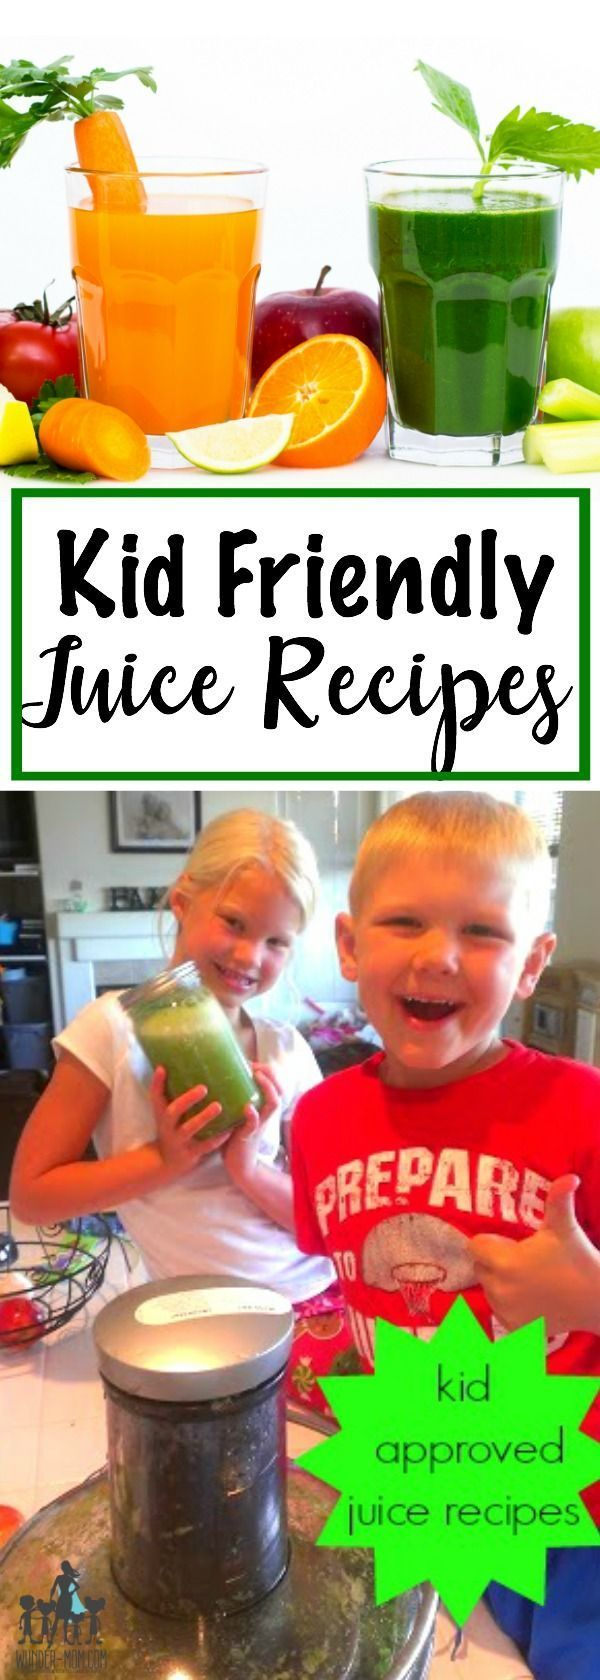 Kid Friendly Juice Recipes - if you have picky eaters and are having trouble getting your kids to eat their veggies these kid friendly green juice and orange-carrot juice recipes are a must try!